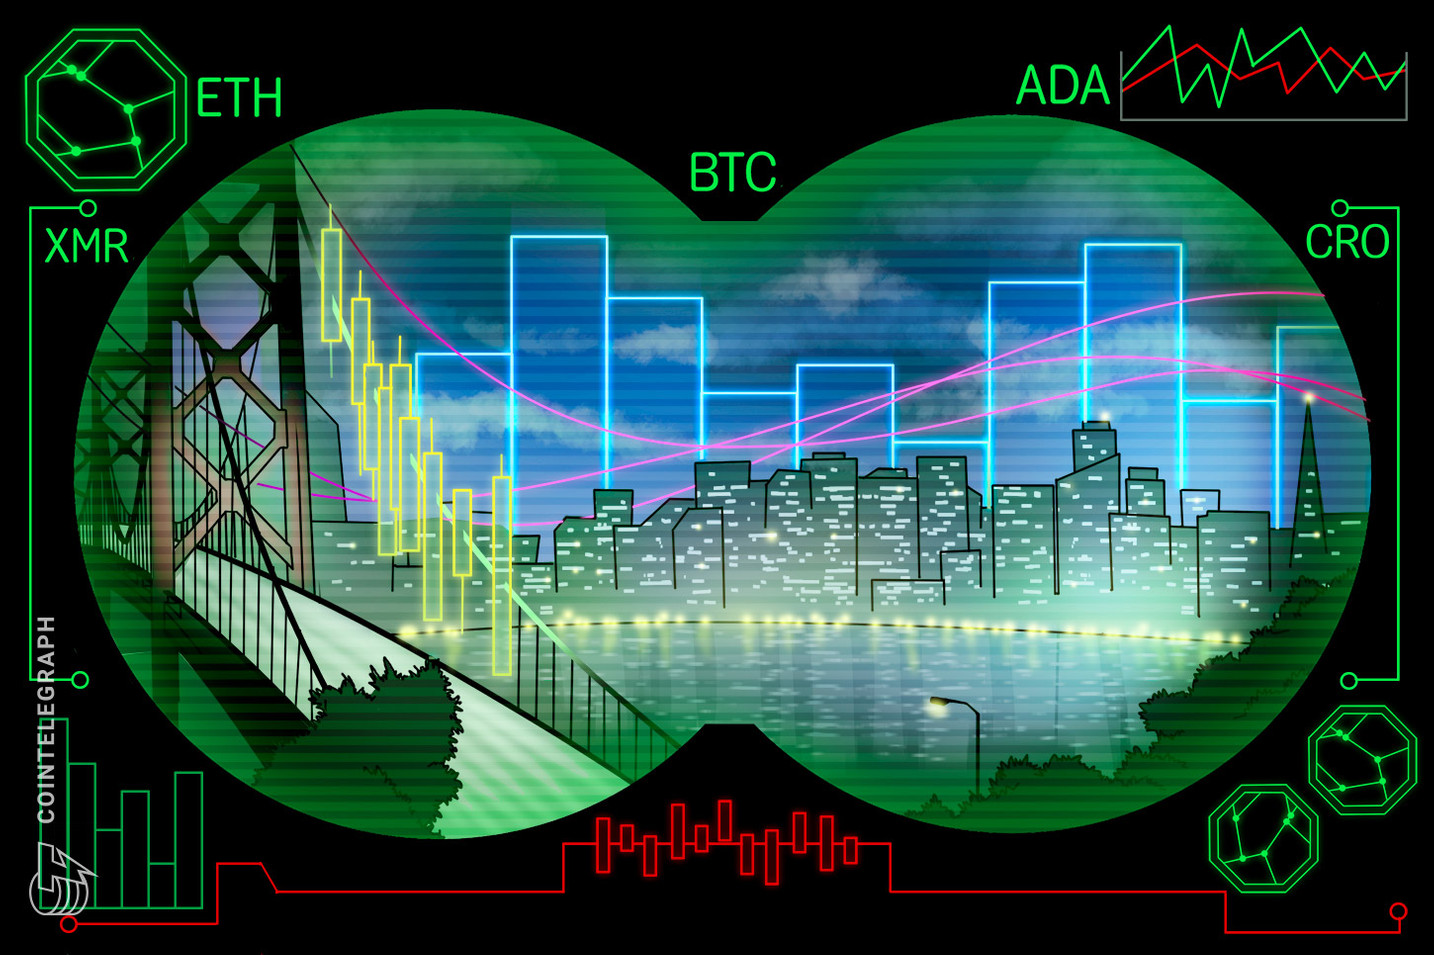 Top 5 Cryptocurrencies to Watch This Week: BTC, ETH, ADA, XMR, CRO